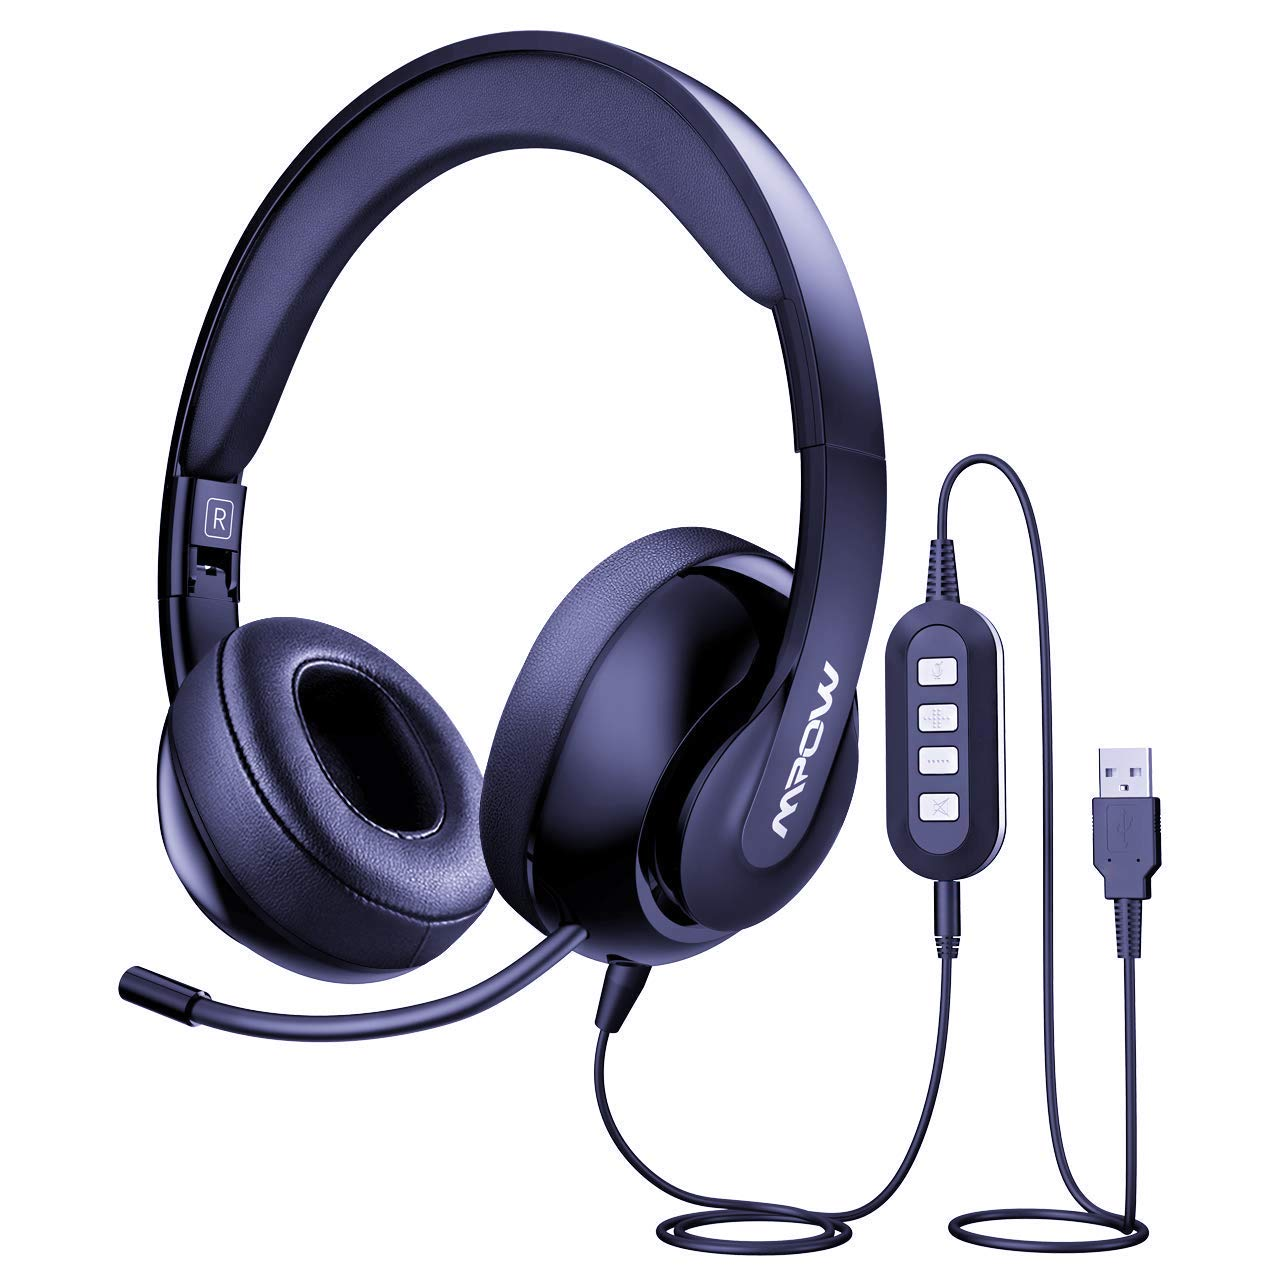 Mpow 224 3.5mm/USB Headset with Microphone, Foldable Computer Headphones with Retractable Noise Cancelling Mic, All-Platform Compatible Lightweight USB Headset for PC/Phone/ Laptop/Skype/ School